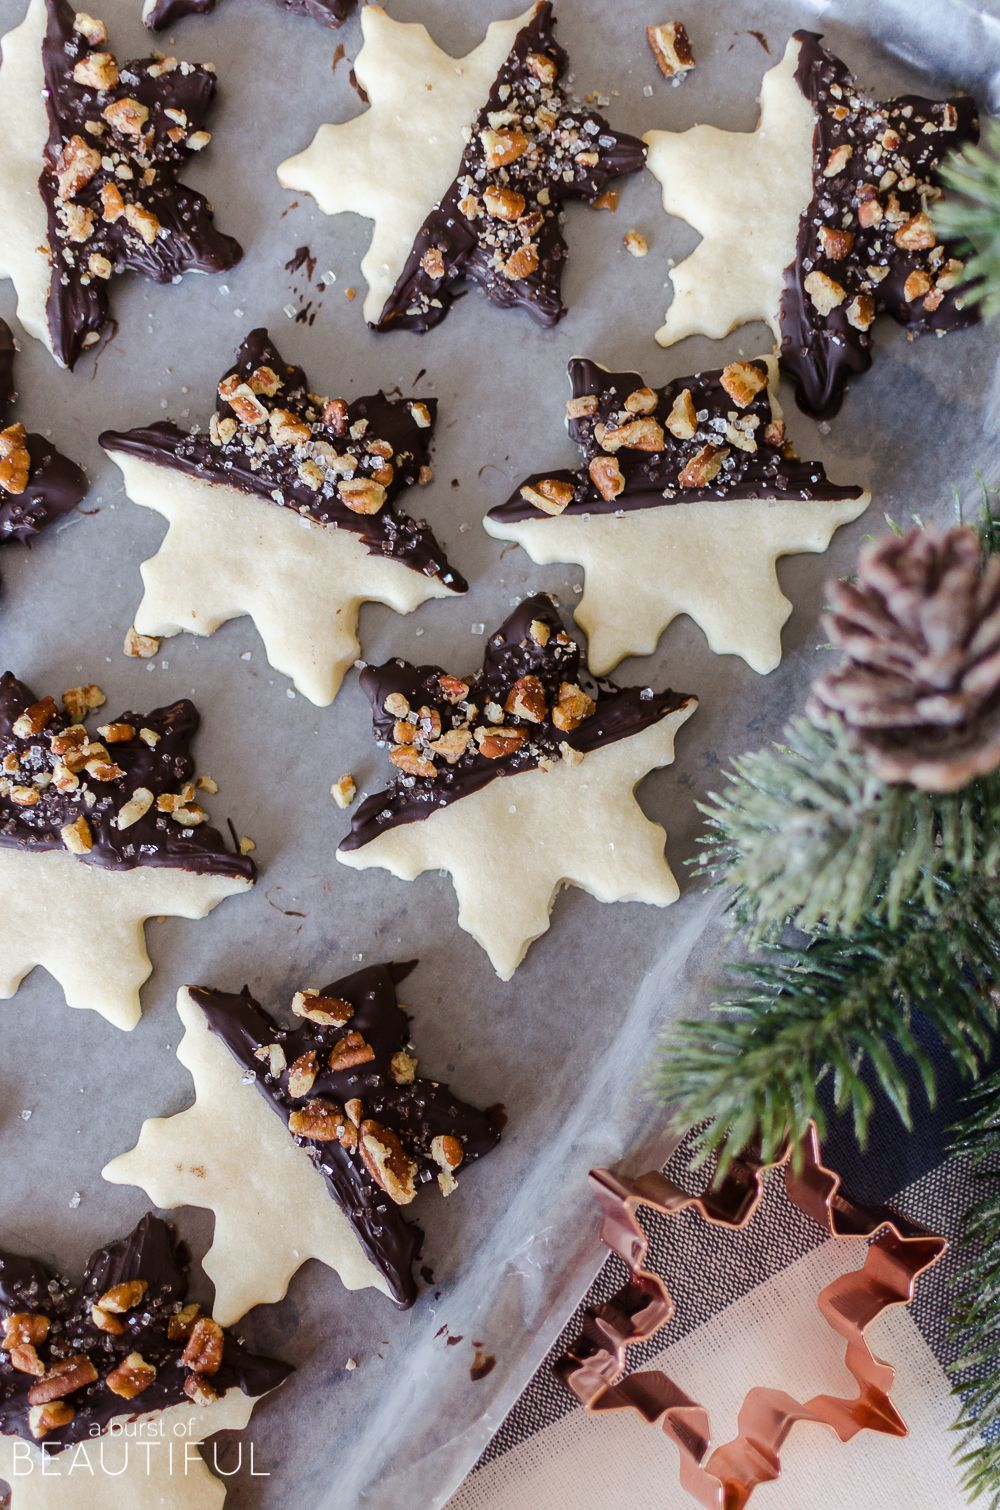 Good morning friends, we are excited to be back today sharing another post full of holiday cheer and inspiration, and I know you're going to love this one because it's all about Christmas cookies! Like many of you, holiday baking is one of our favorite family traditions during the Christmas season. We enjoygathering around our...Read More » christmasdrinks #holidaydrinks #christmassweets #christmascooking #christmasgoodies #christmasrecipes #holidayrecipes #holidaygifts #christmasholi